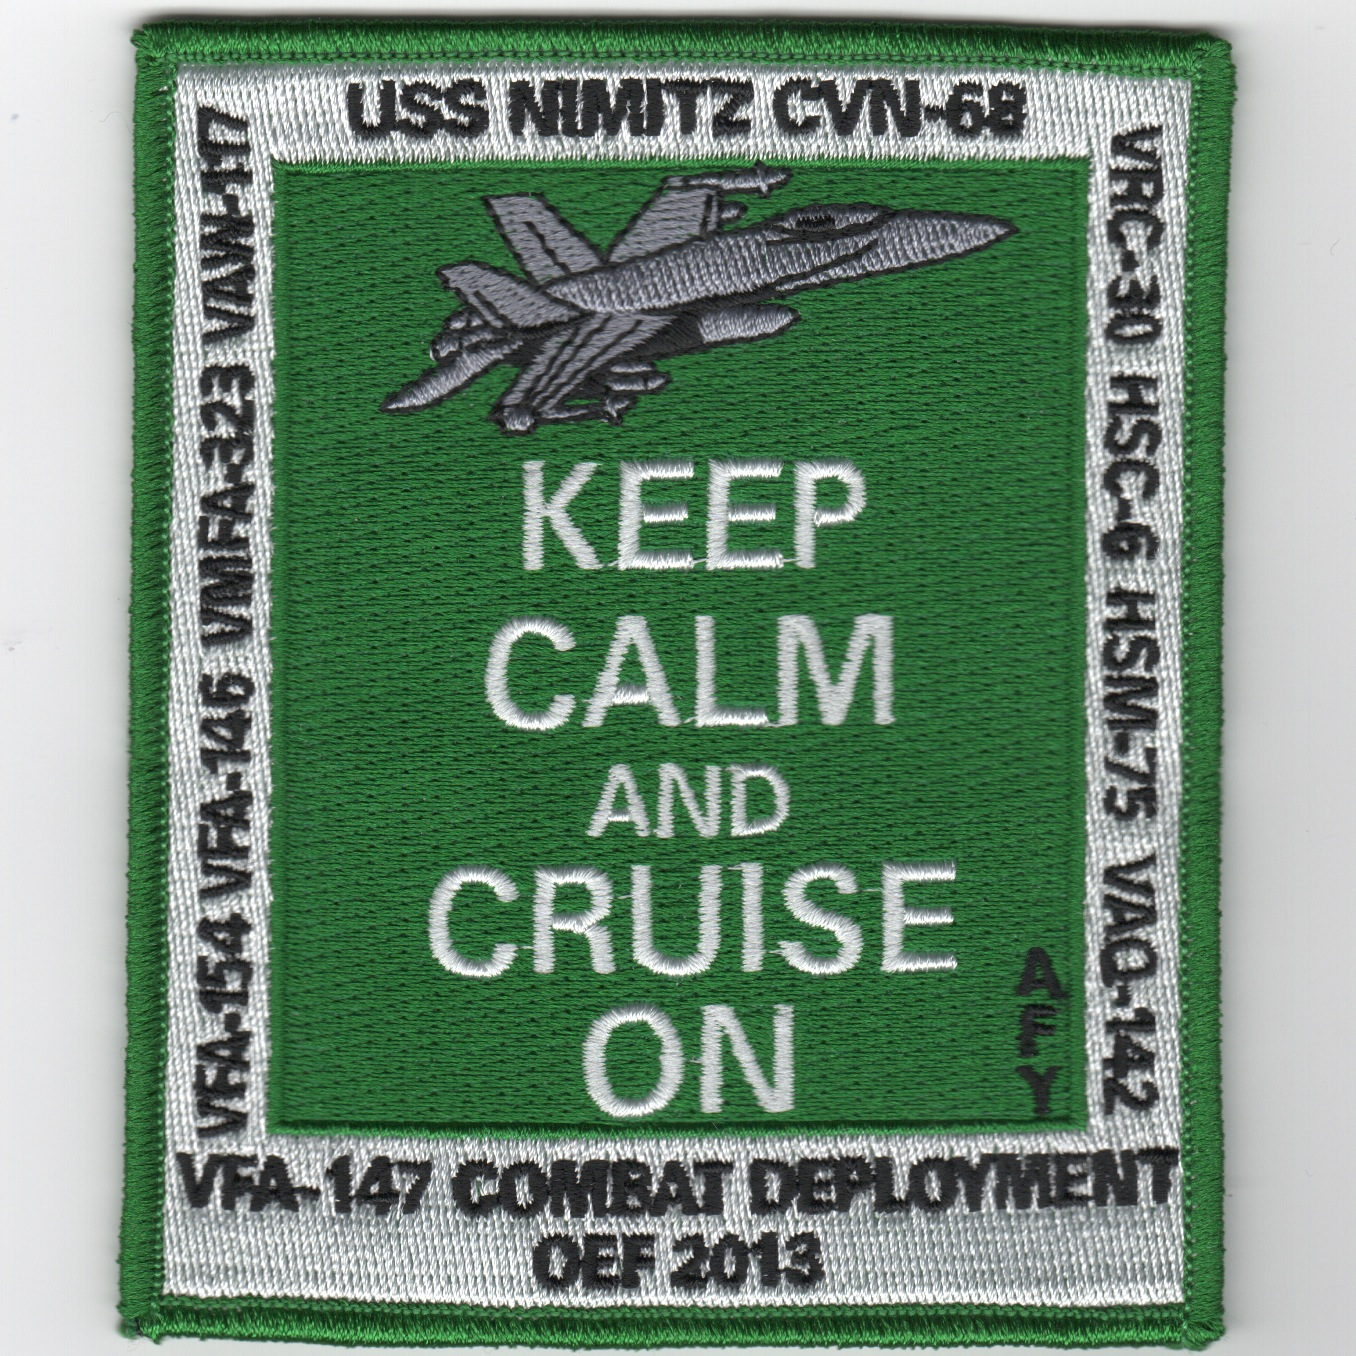 CVN-68/CVW-11 2013 OEF 'Keep Calm' Cruise Patch (Green)